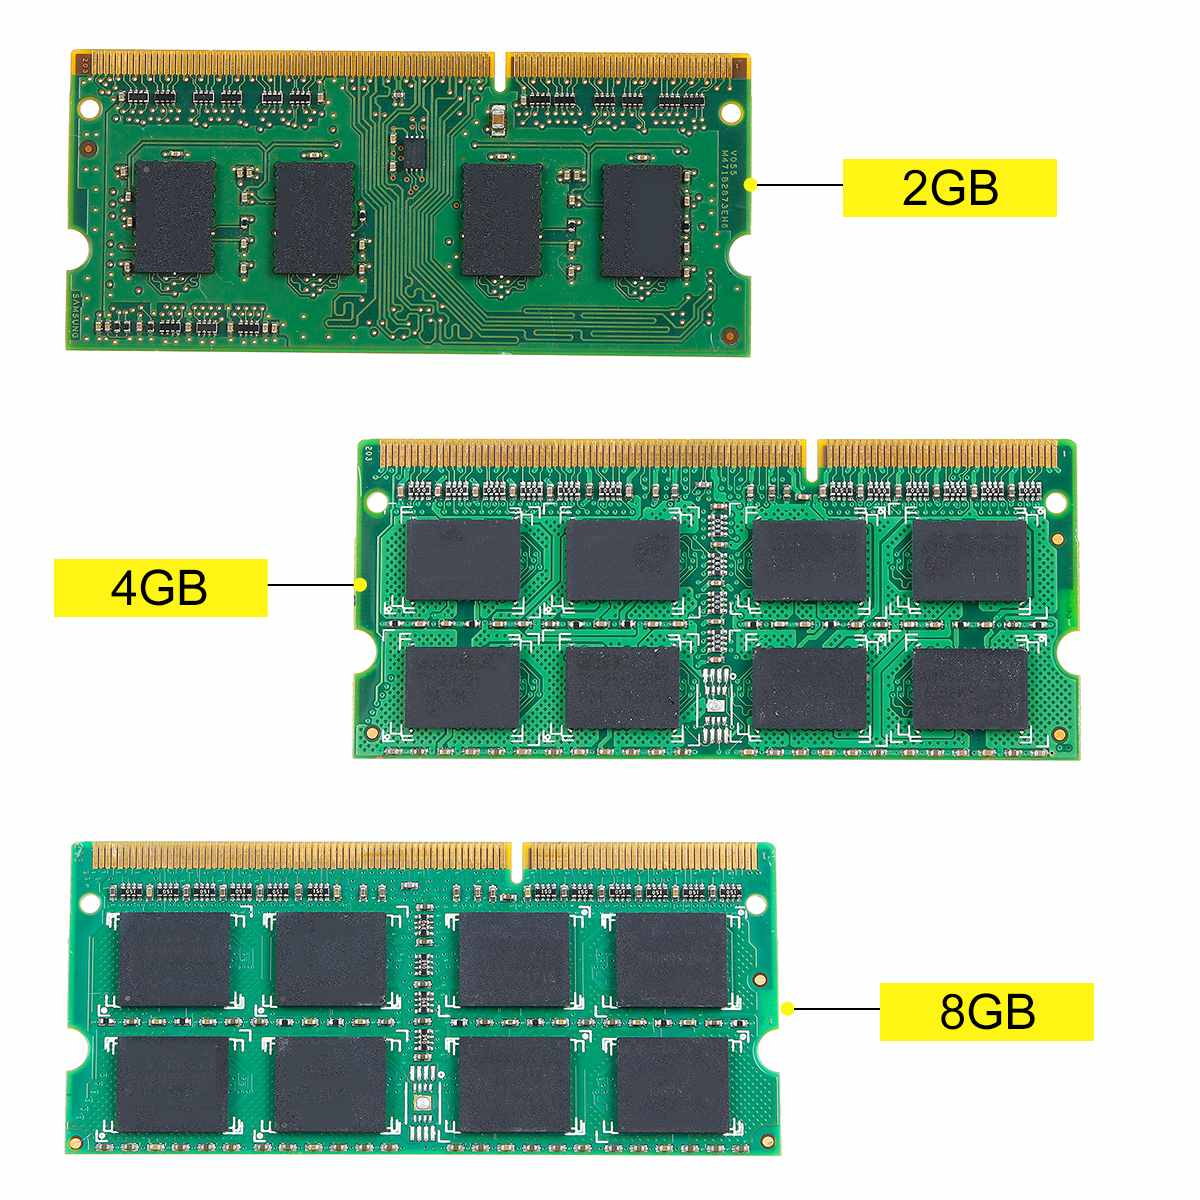 8GB 4GB 2GB Laptop Notebook Memory For Ram DDR3 1600 PC3-12800 1600MHZ 1.5V 204PIN SO-DIMM LOT